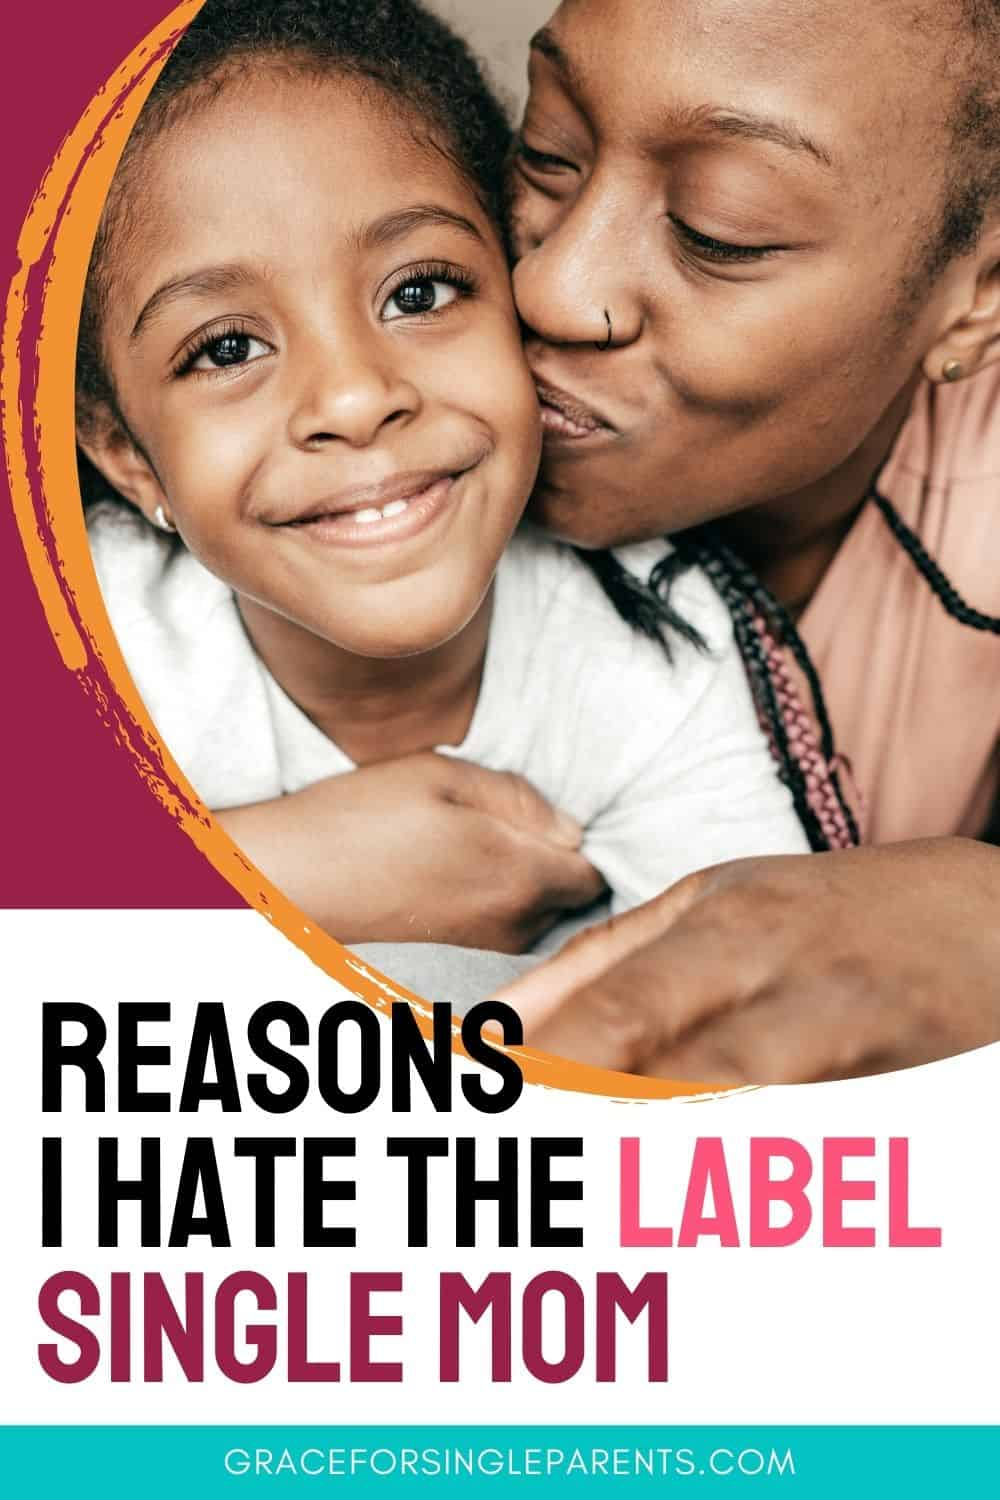 7 Reasons Why I Hate the Label Single Mom